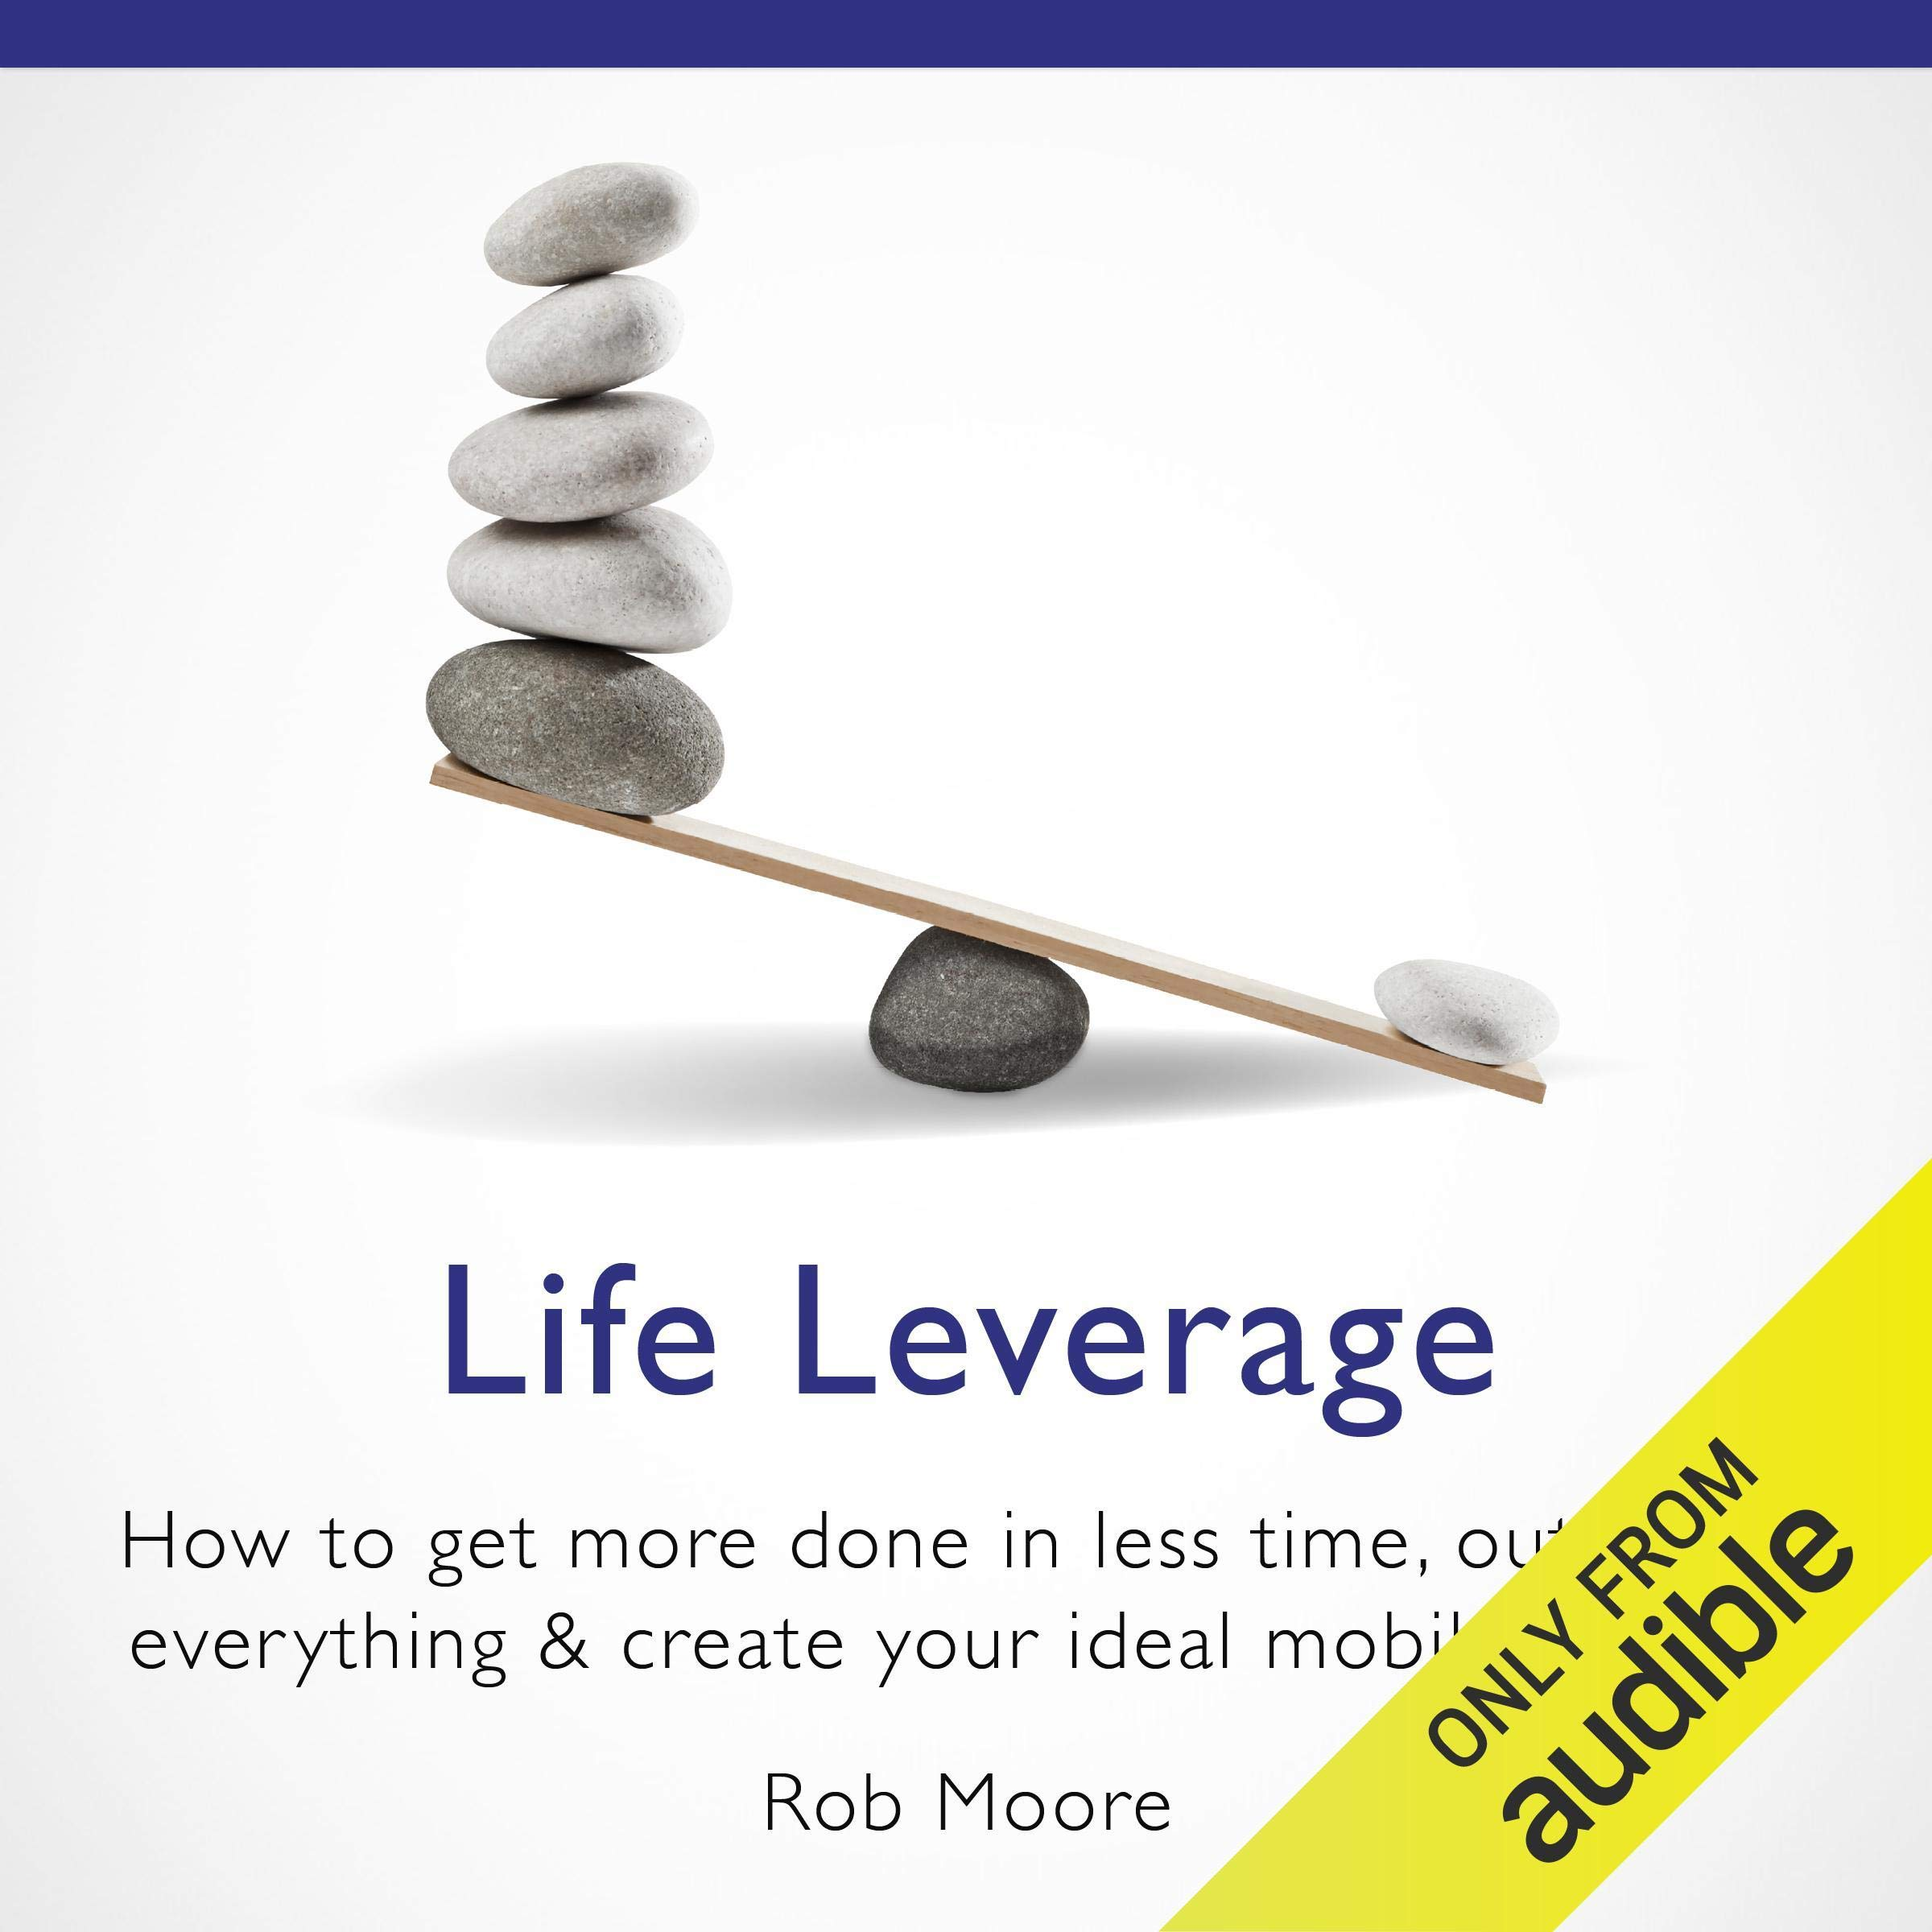 Life Leverage: How to Get More Done in Less Time, Outsource Everything & Create Your Ideal Mobile Lifestyle